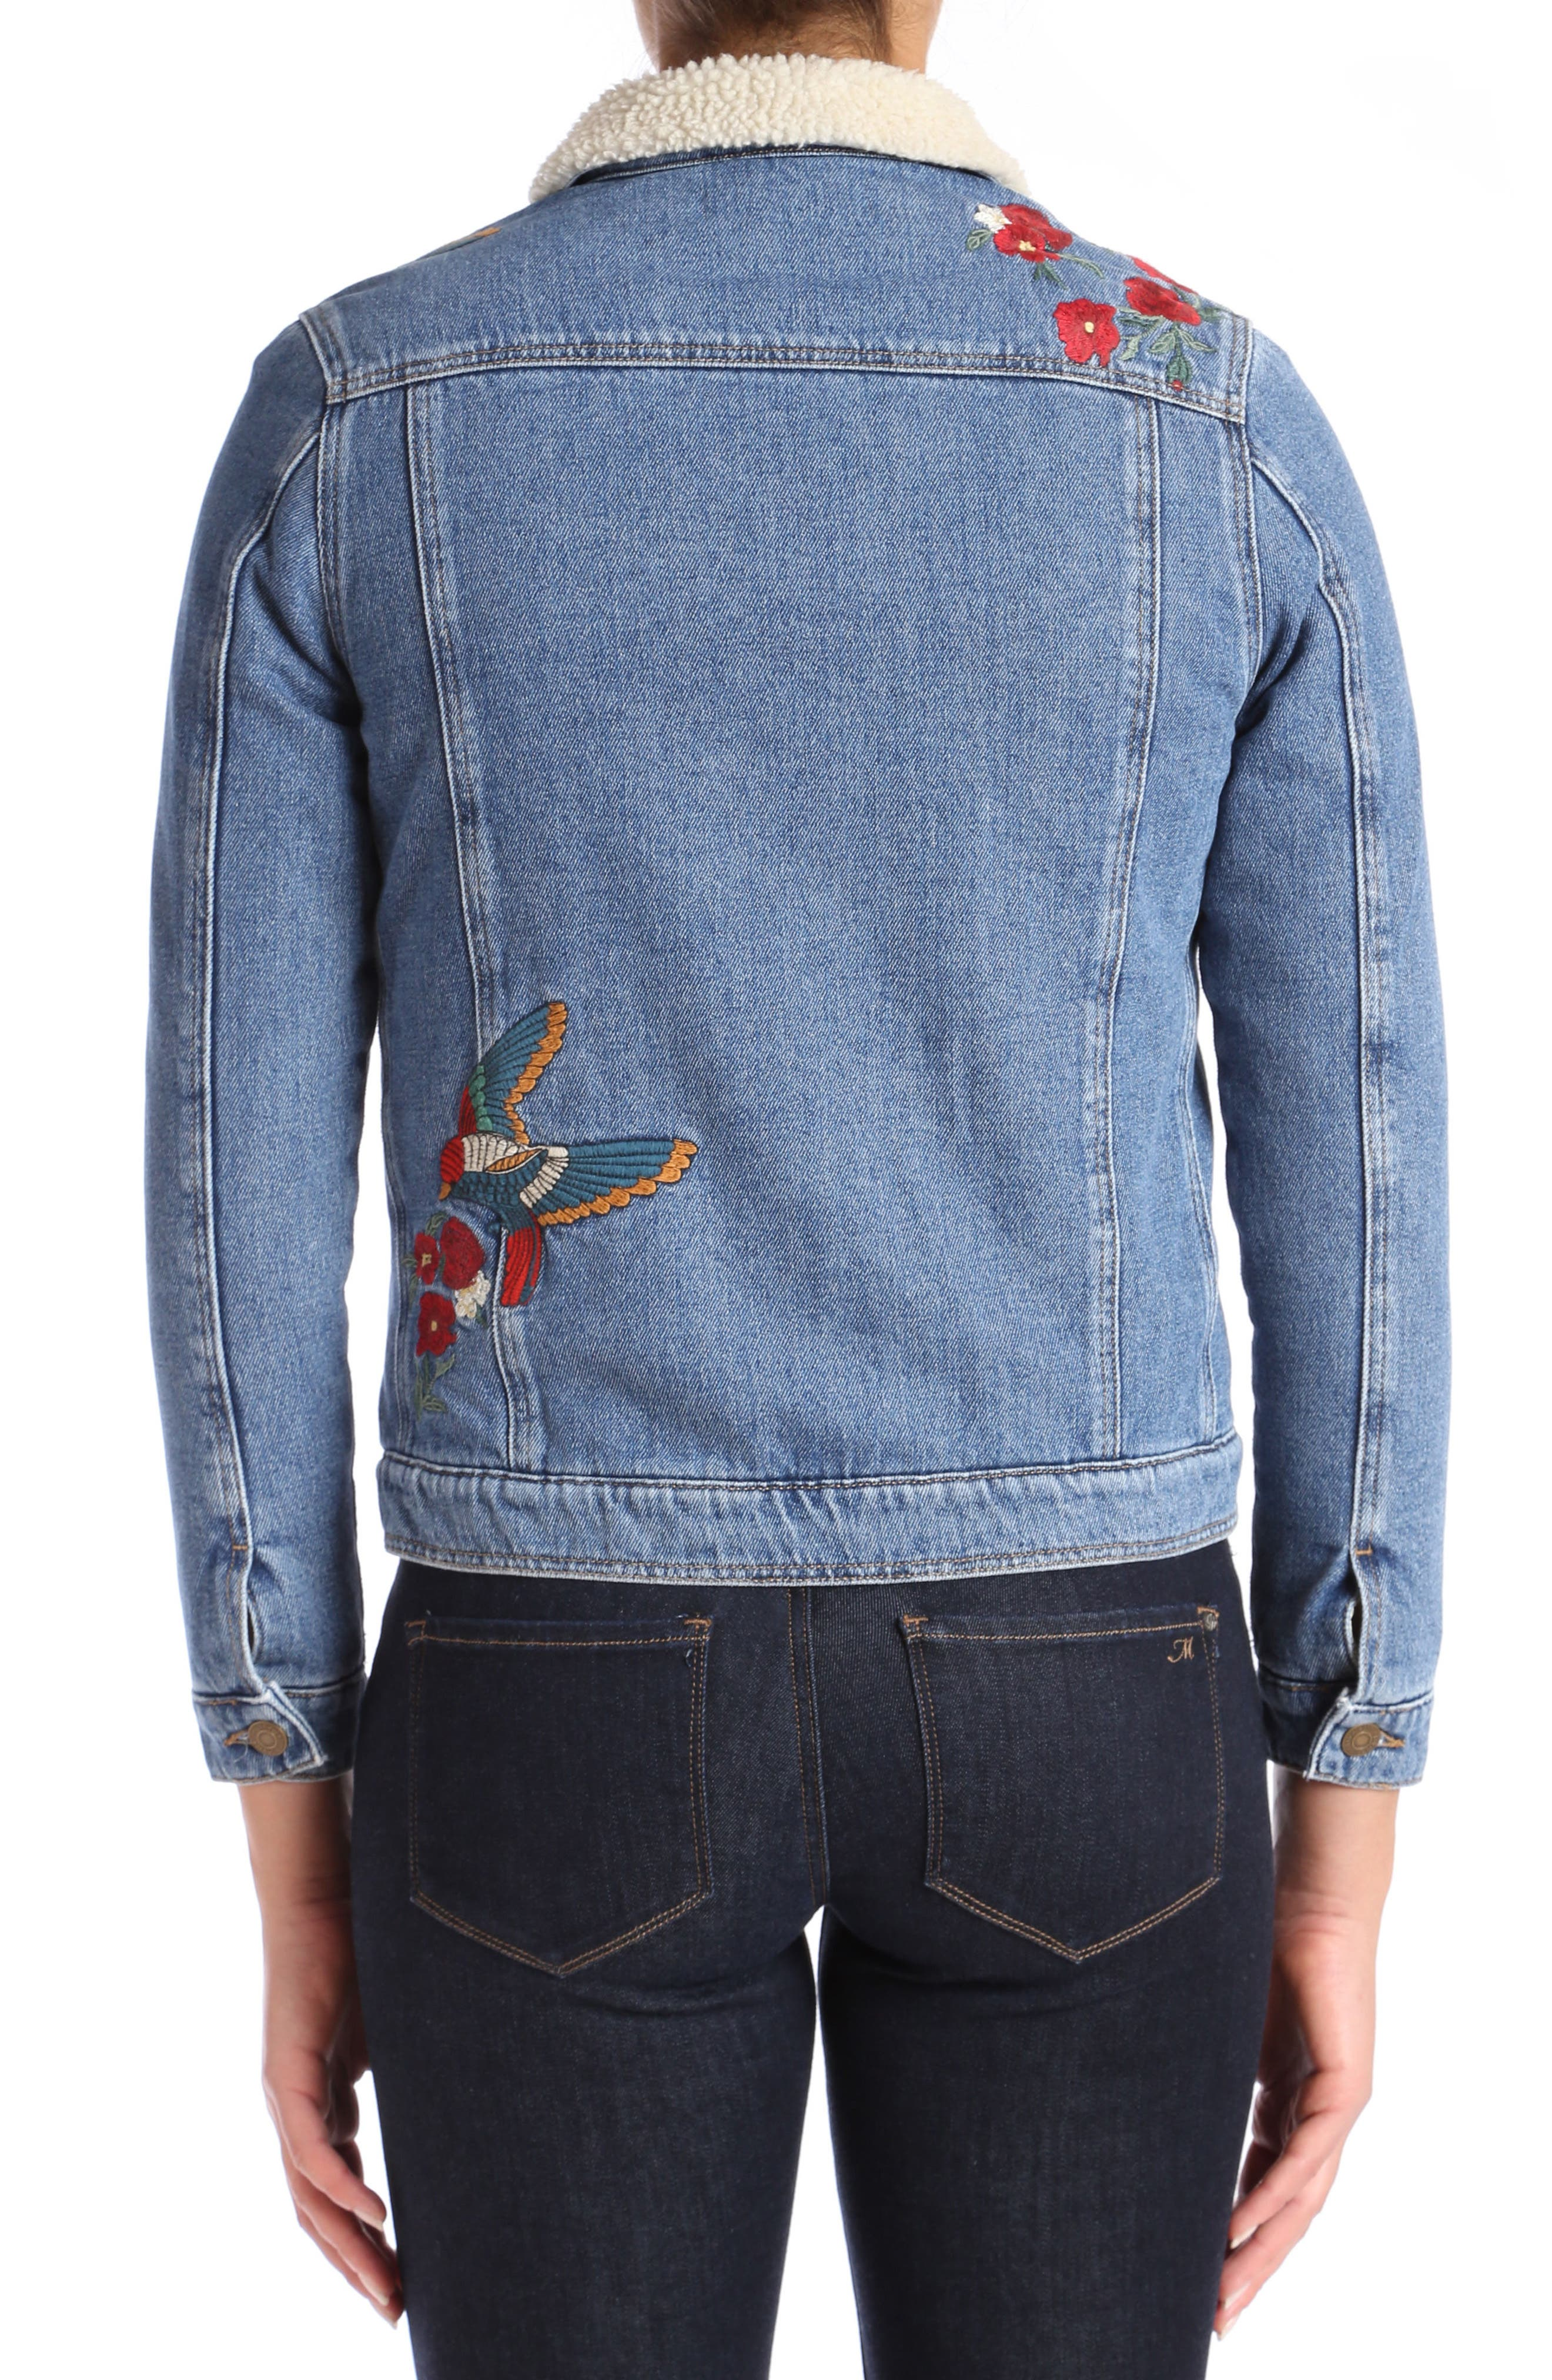 Katy Embroidered Denim Jacket,                             Alternate thumbnail 2, color,                             Mid Garden Embroidery